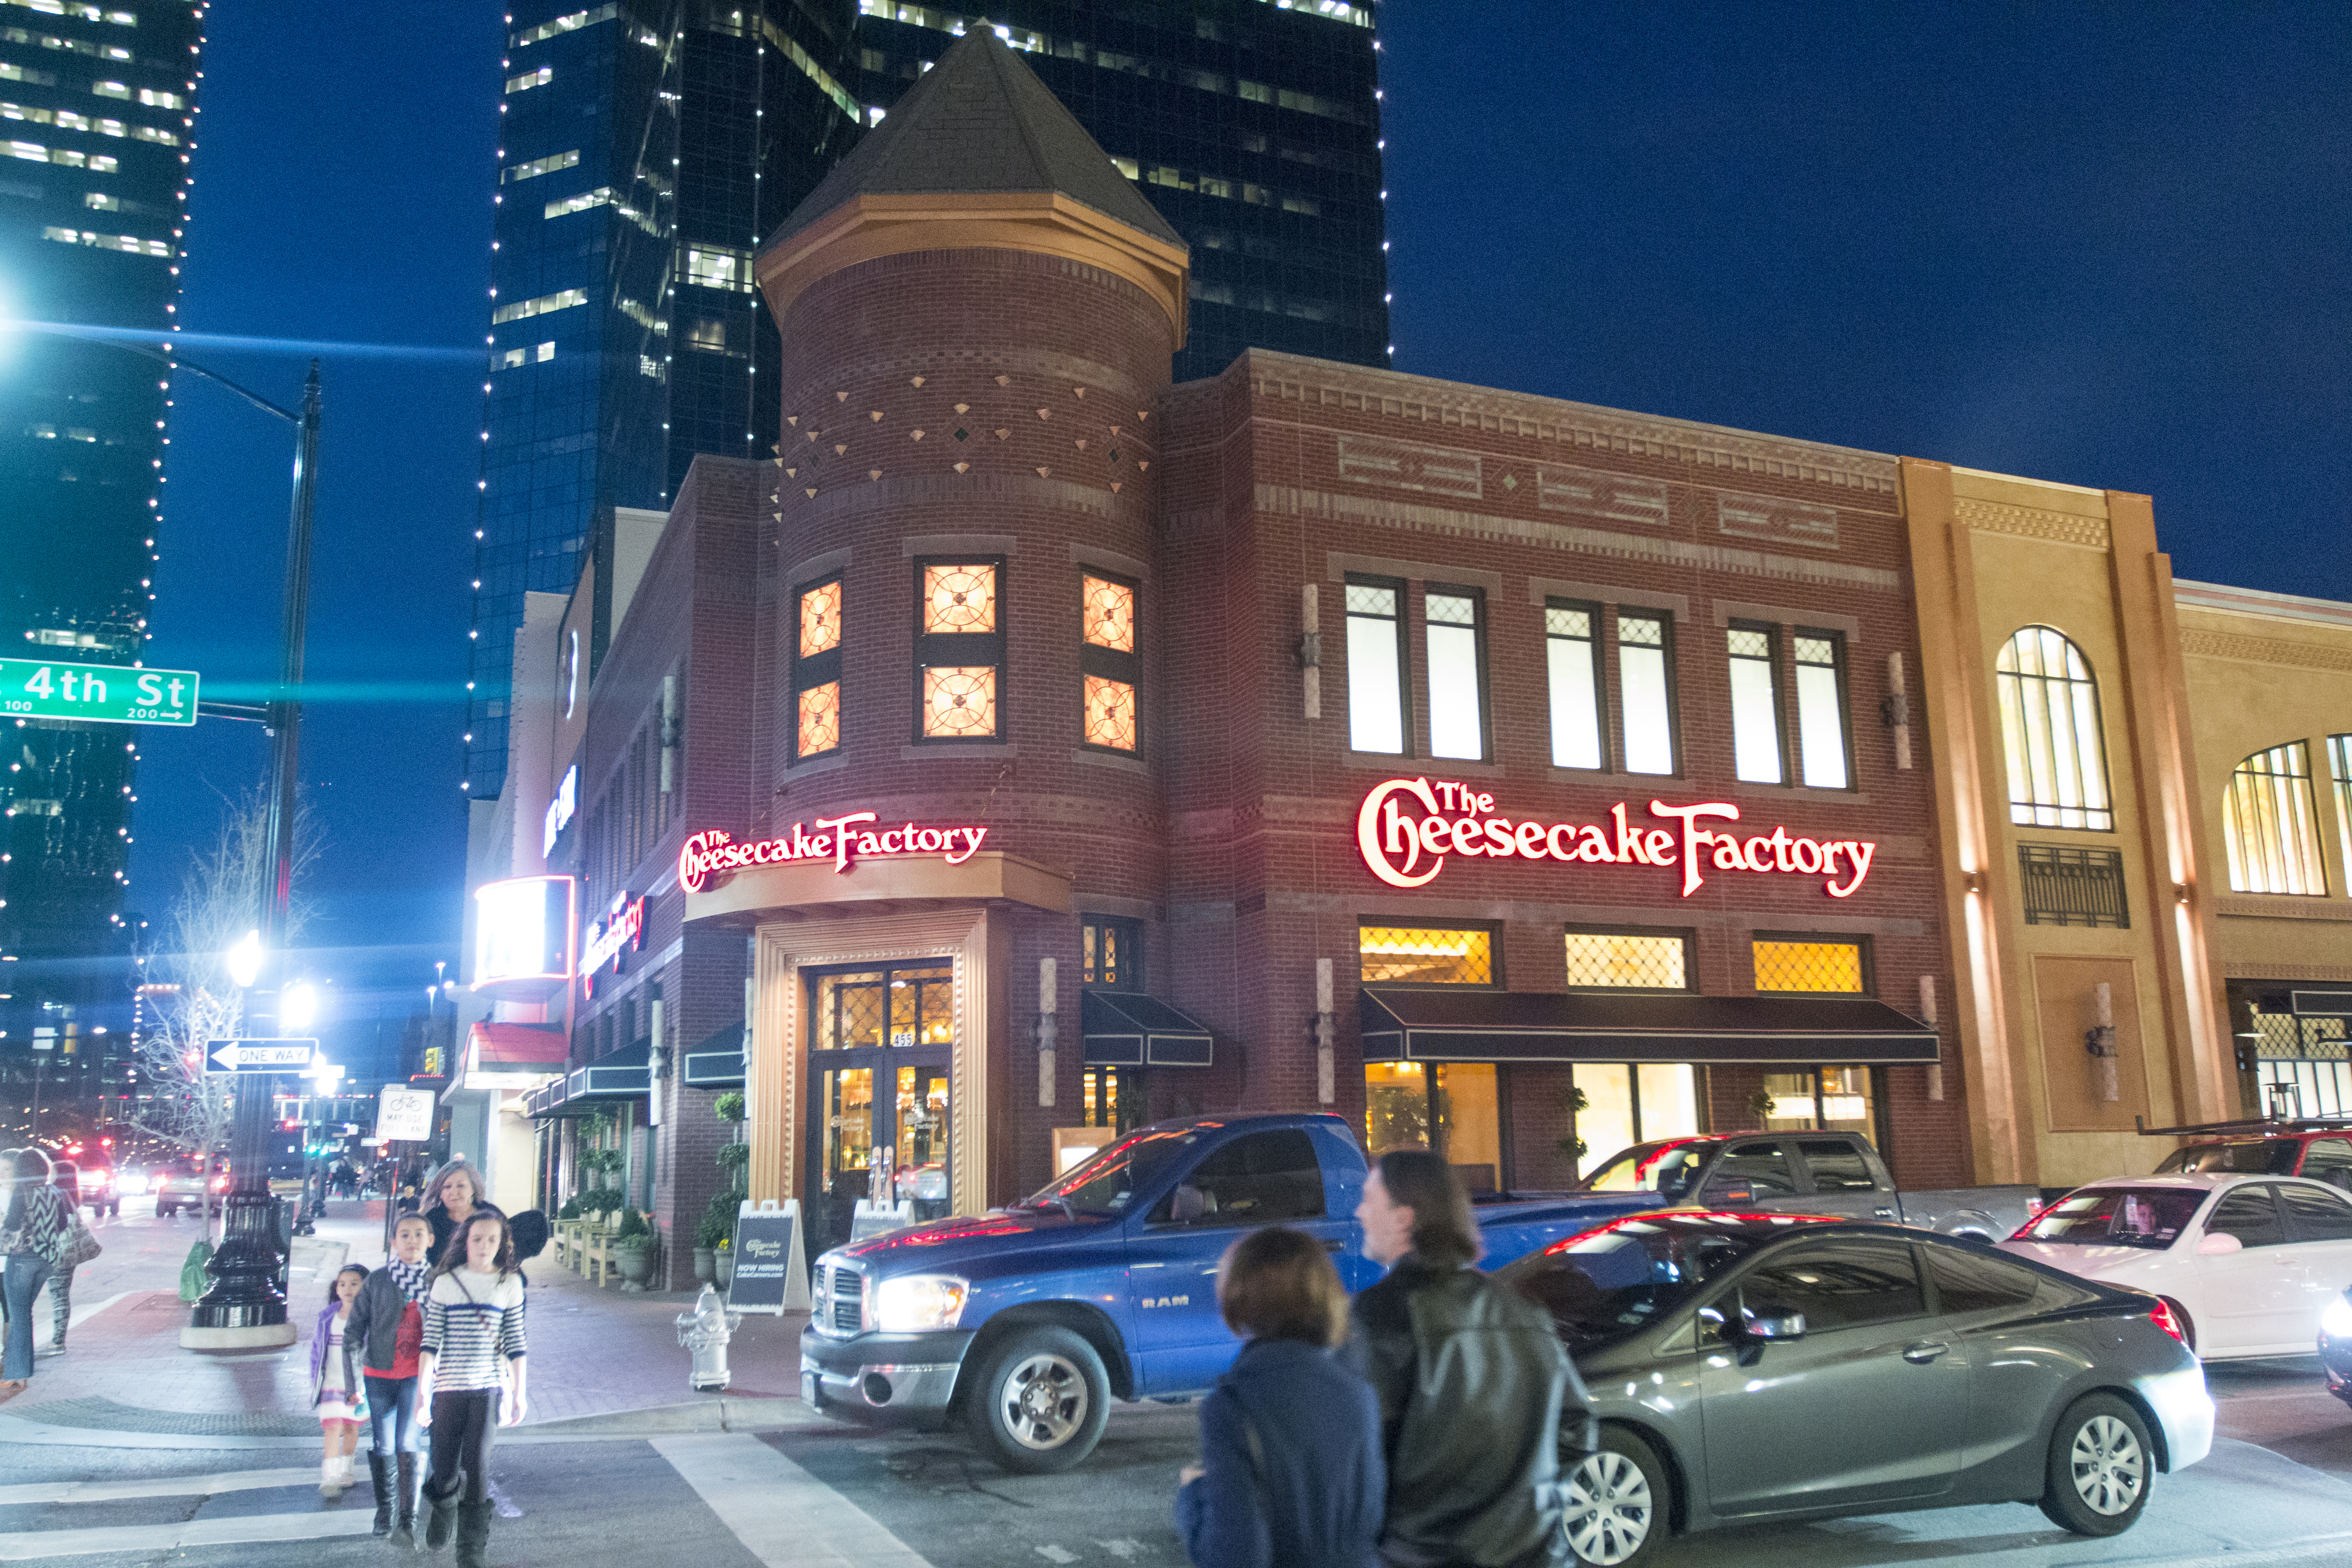 Sundance Square Opens The Cheesecake Factory Today With 8 700 Foot Restaurant Business Wire